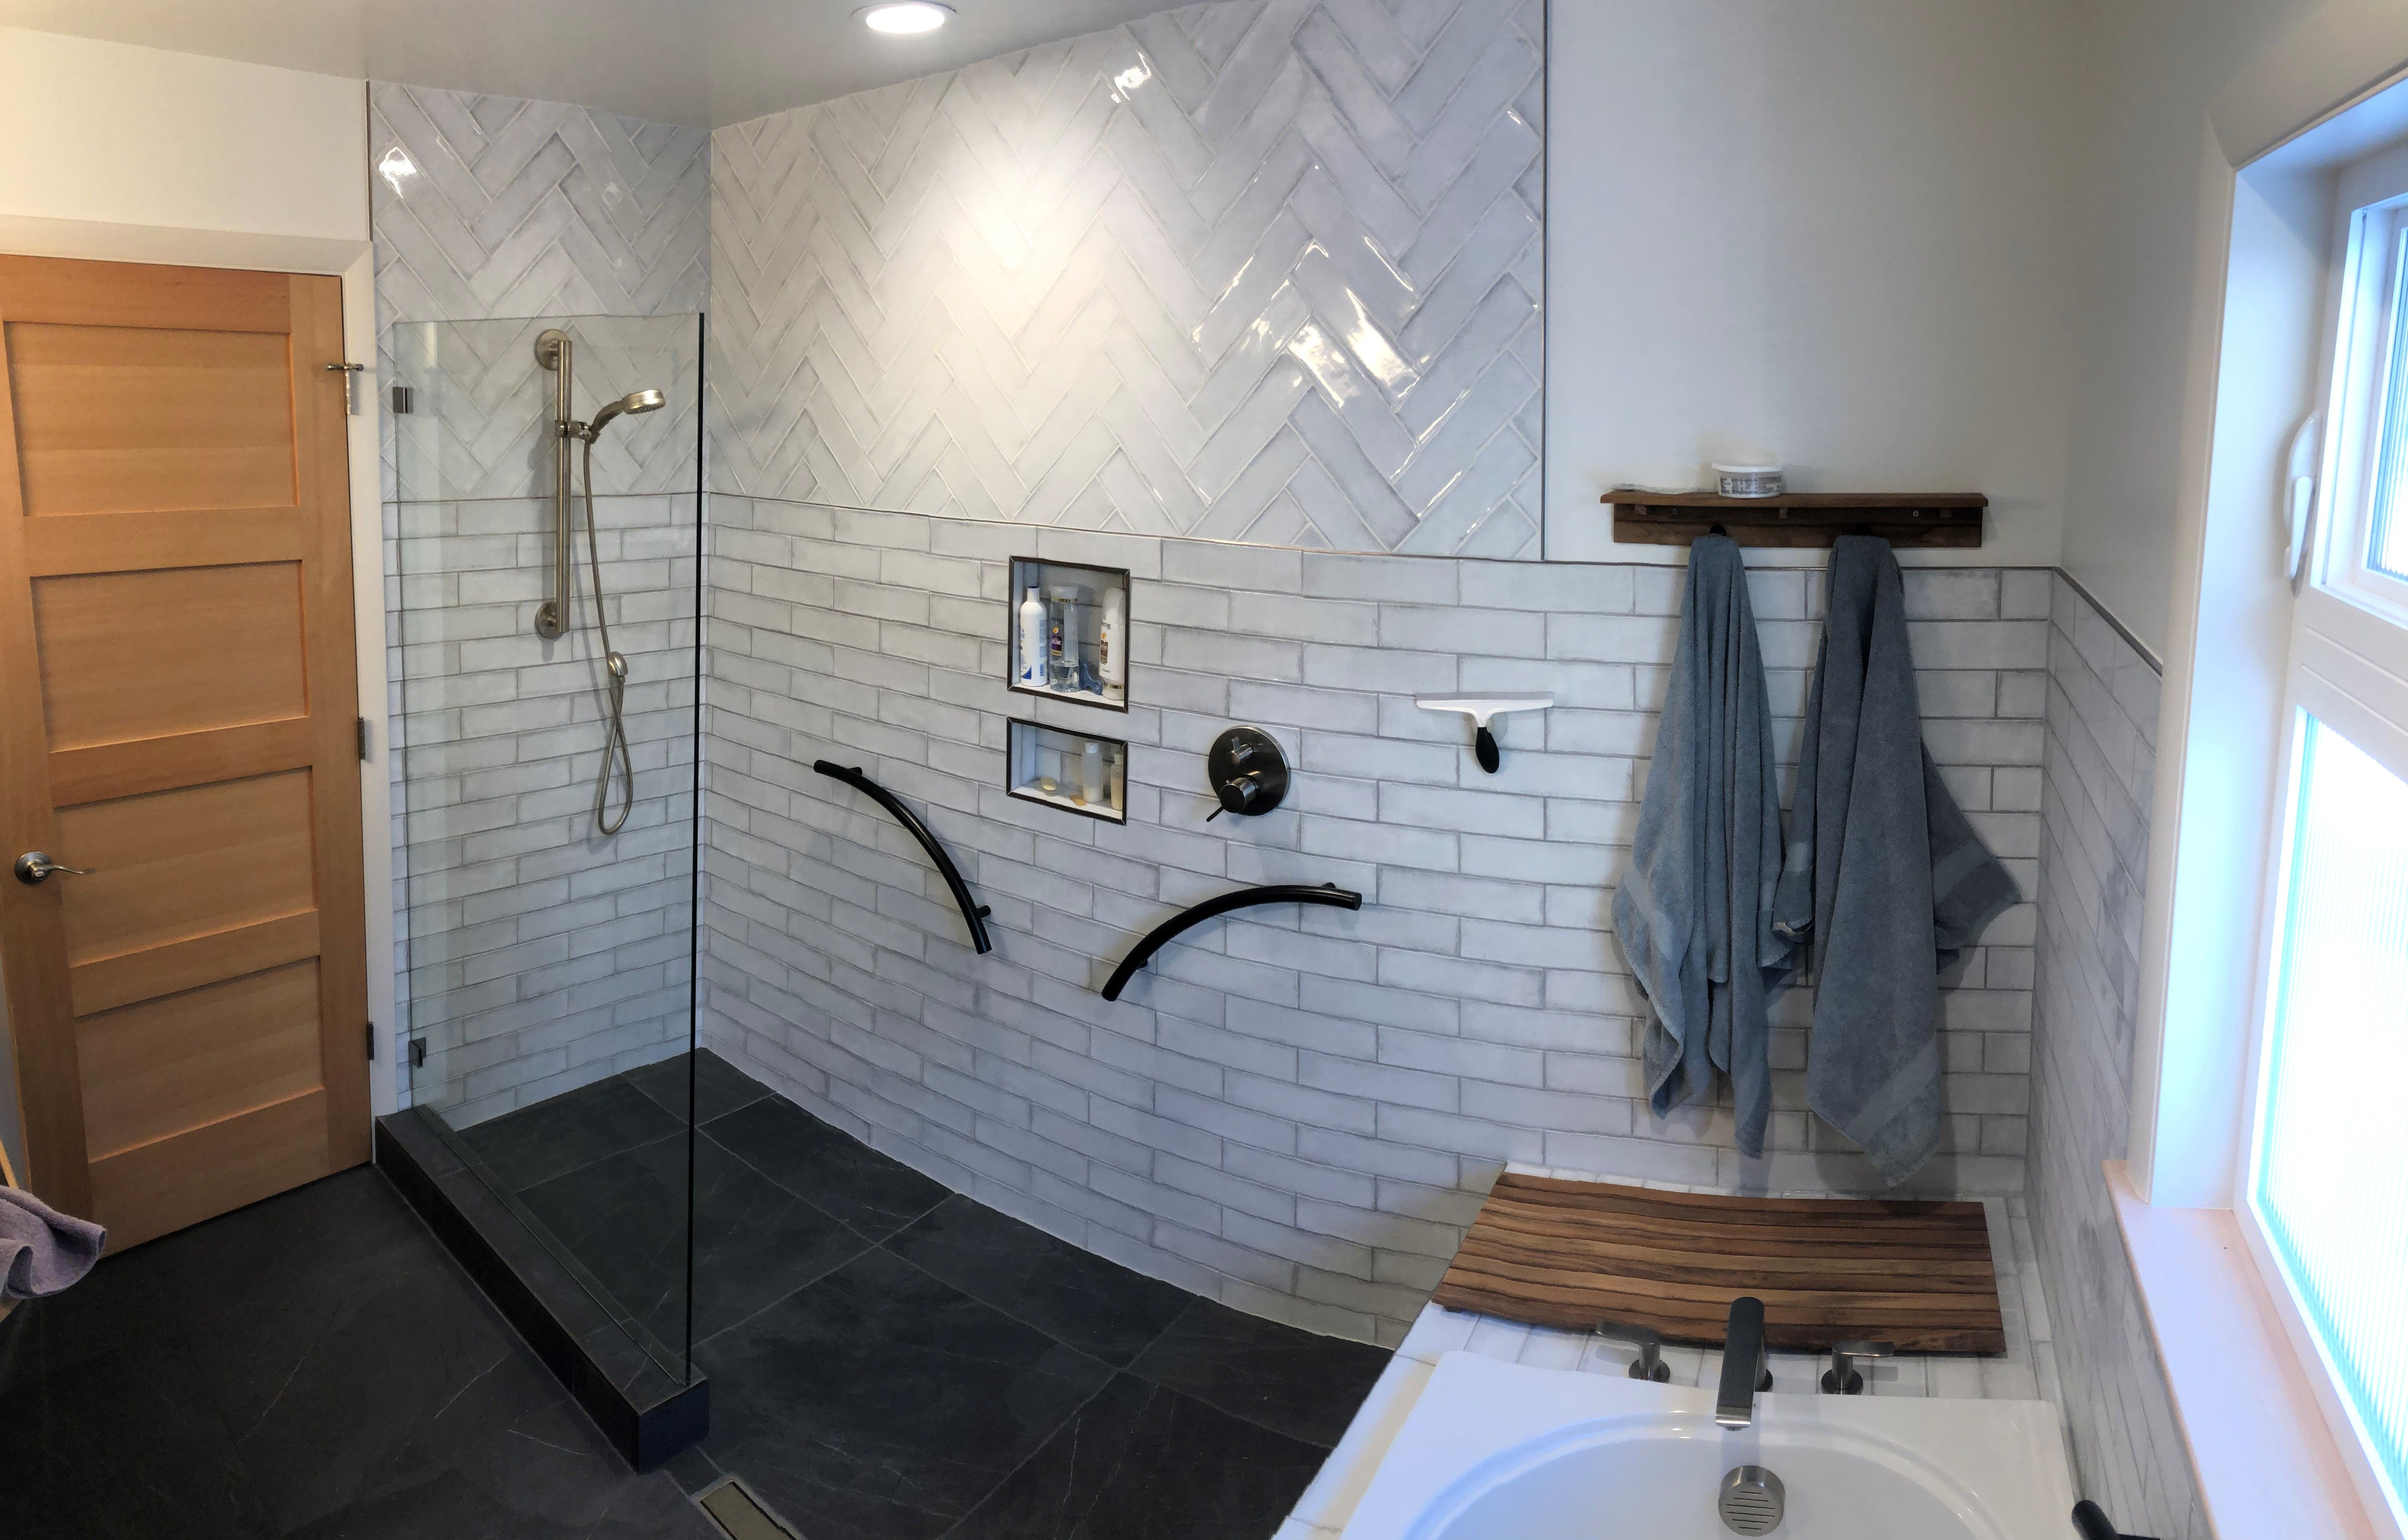 Tile Installations Using Florida